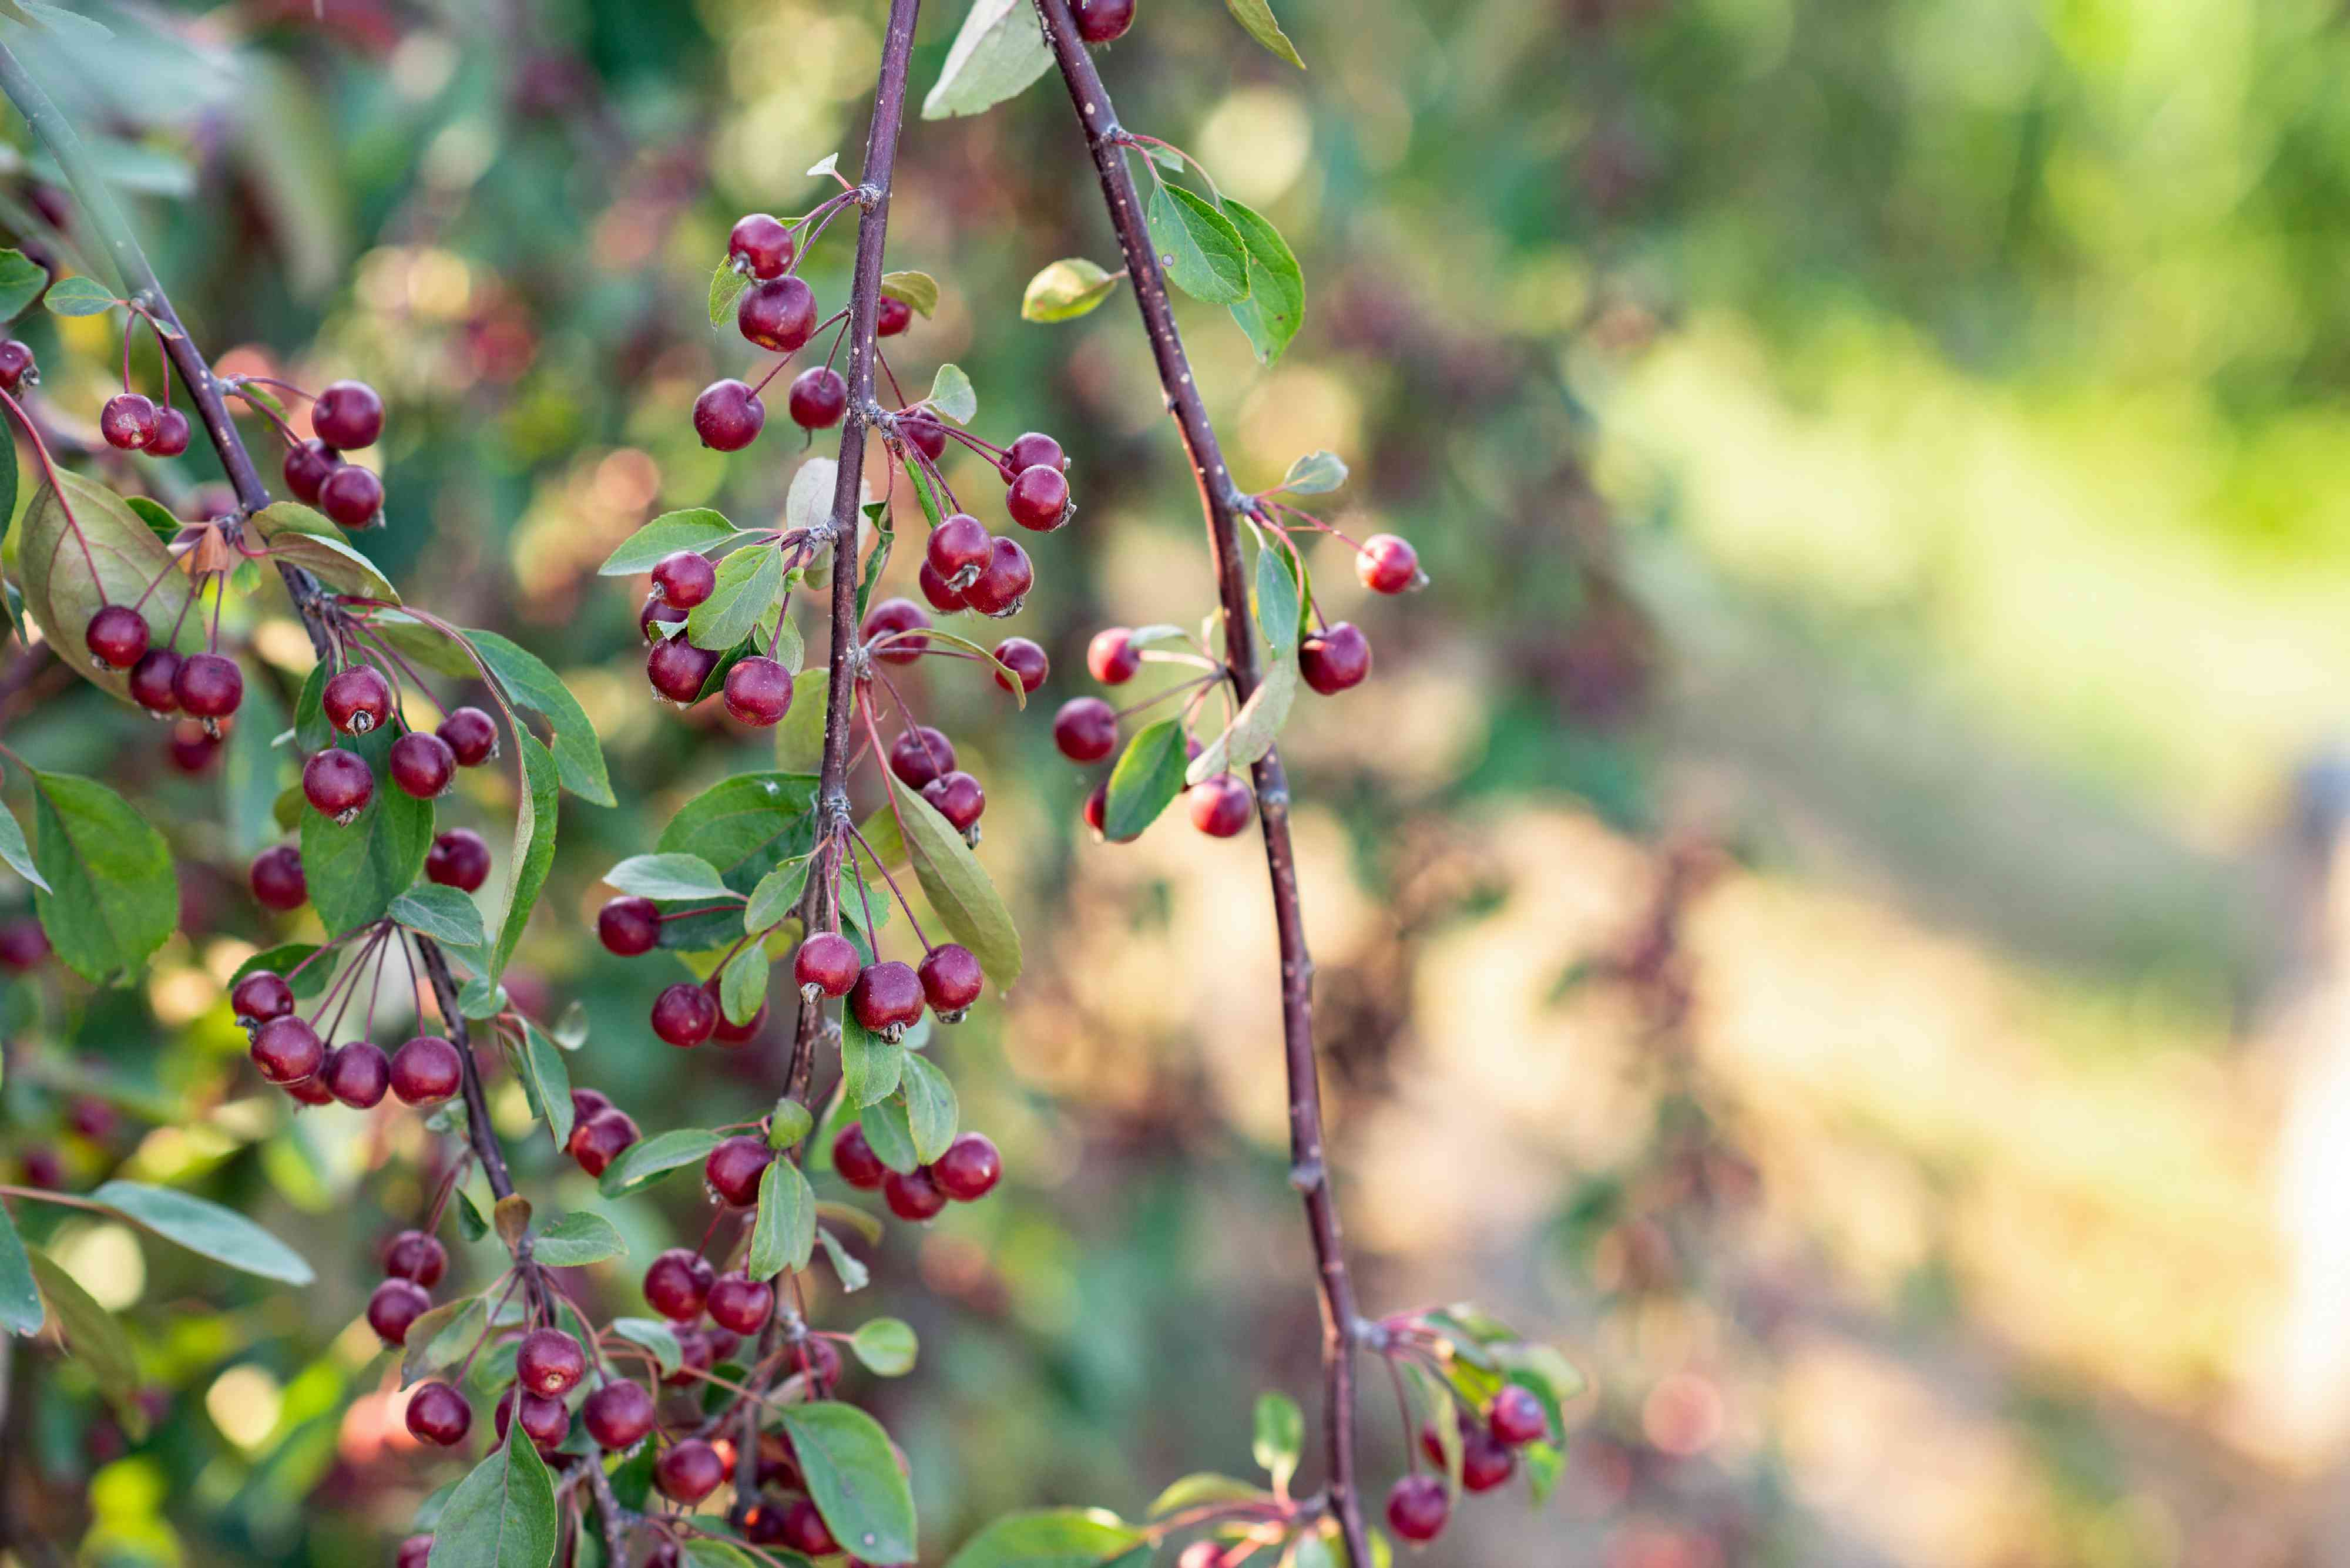 Red chokeberry shrub branch with deep red berries hanging closeup